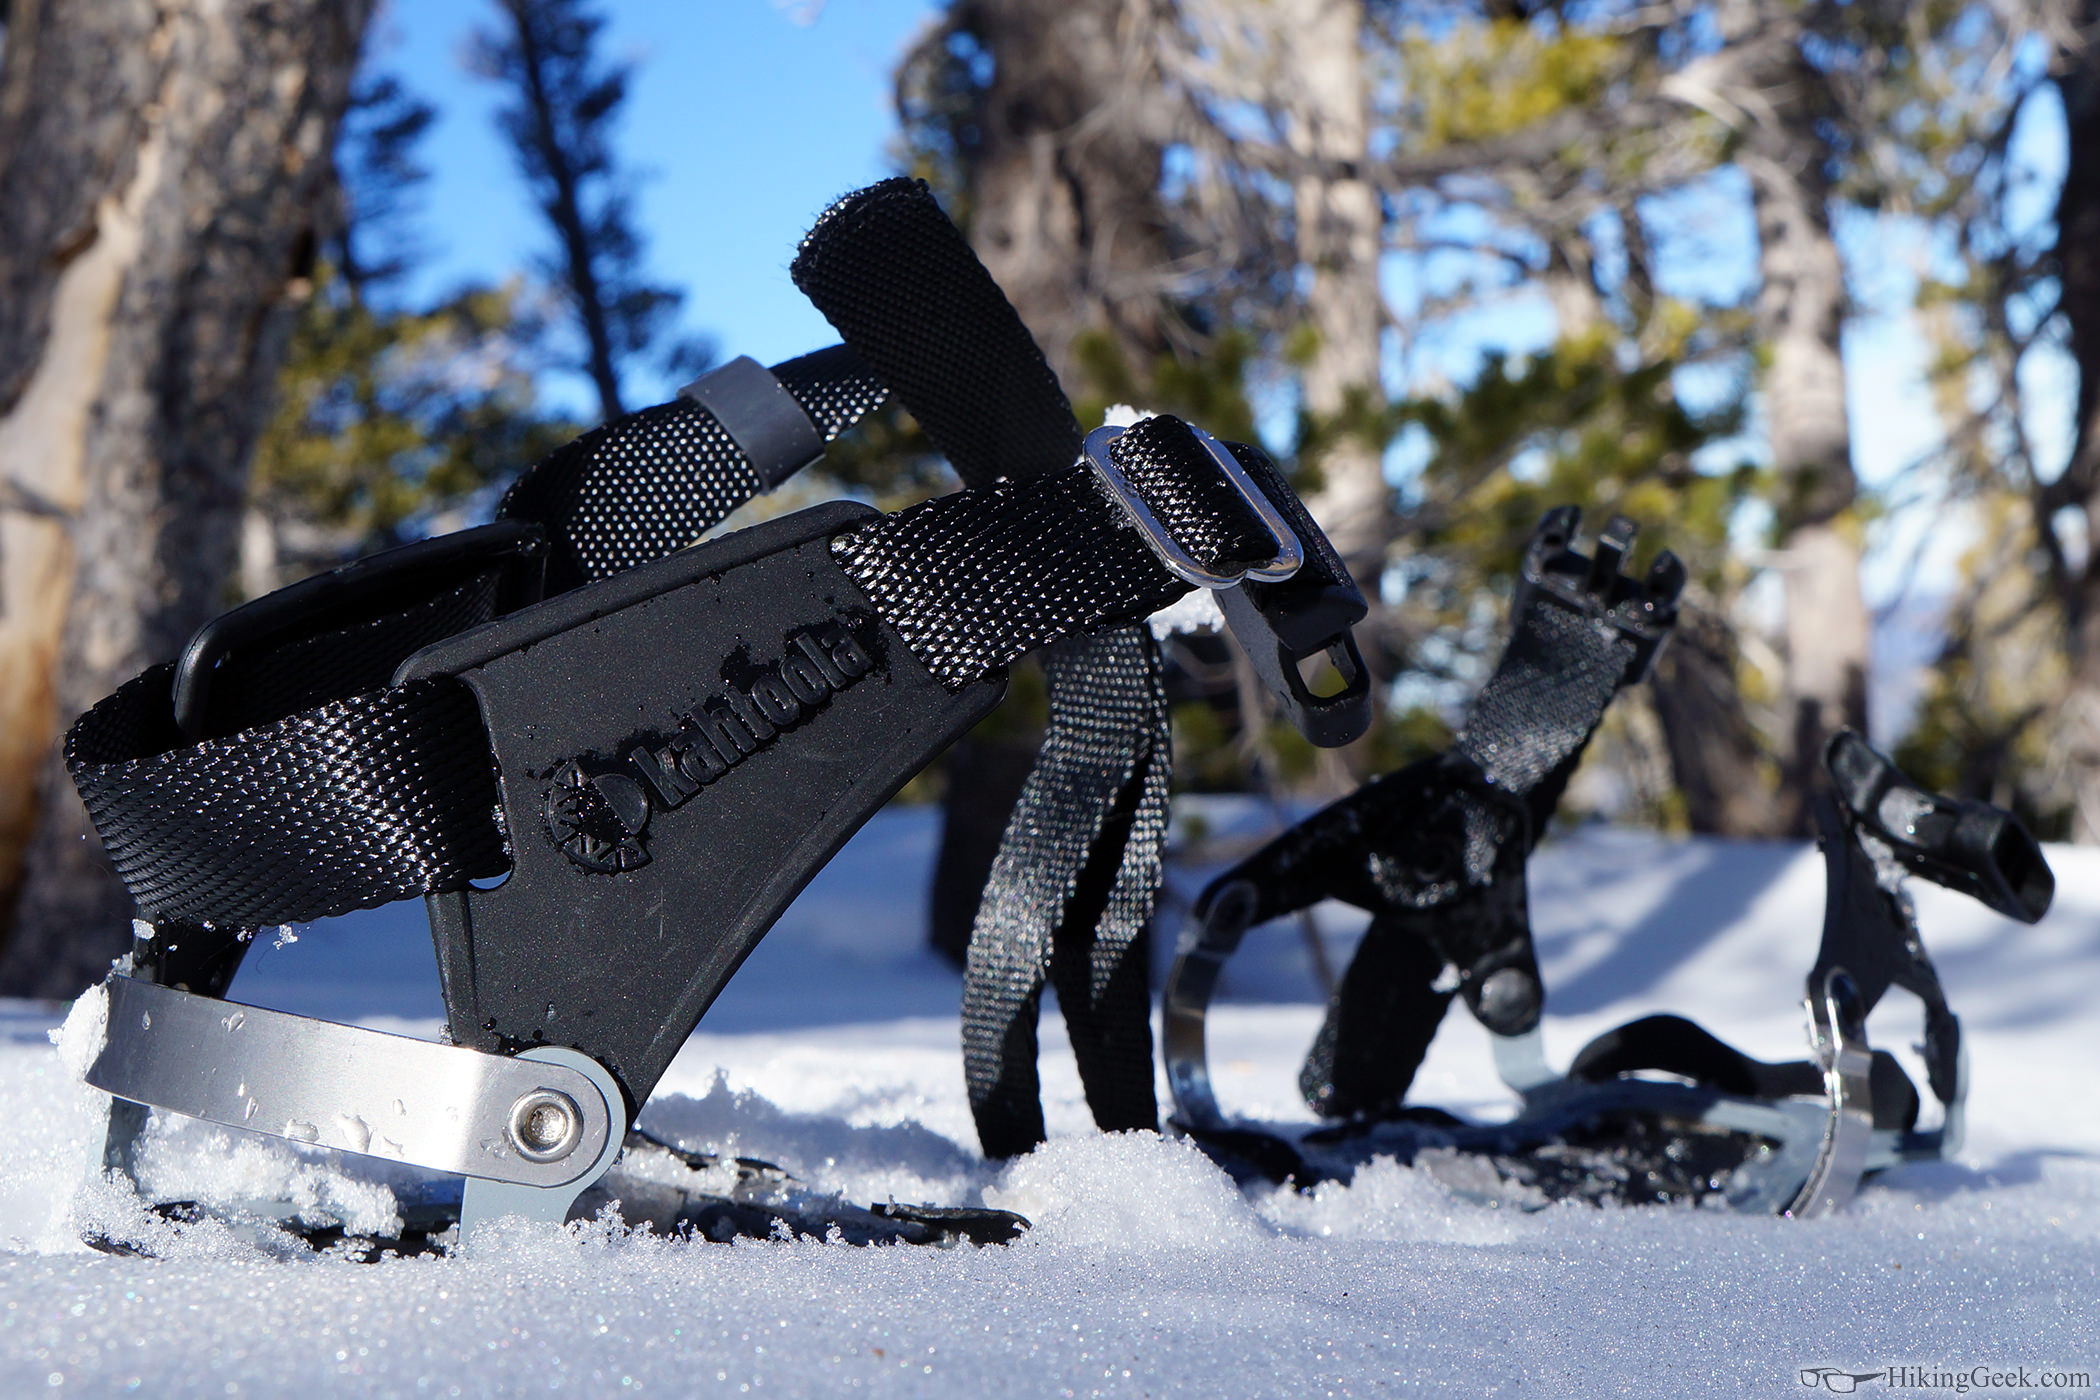 Gear Review: Kahtoola K·10 Hiking Crampons